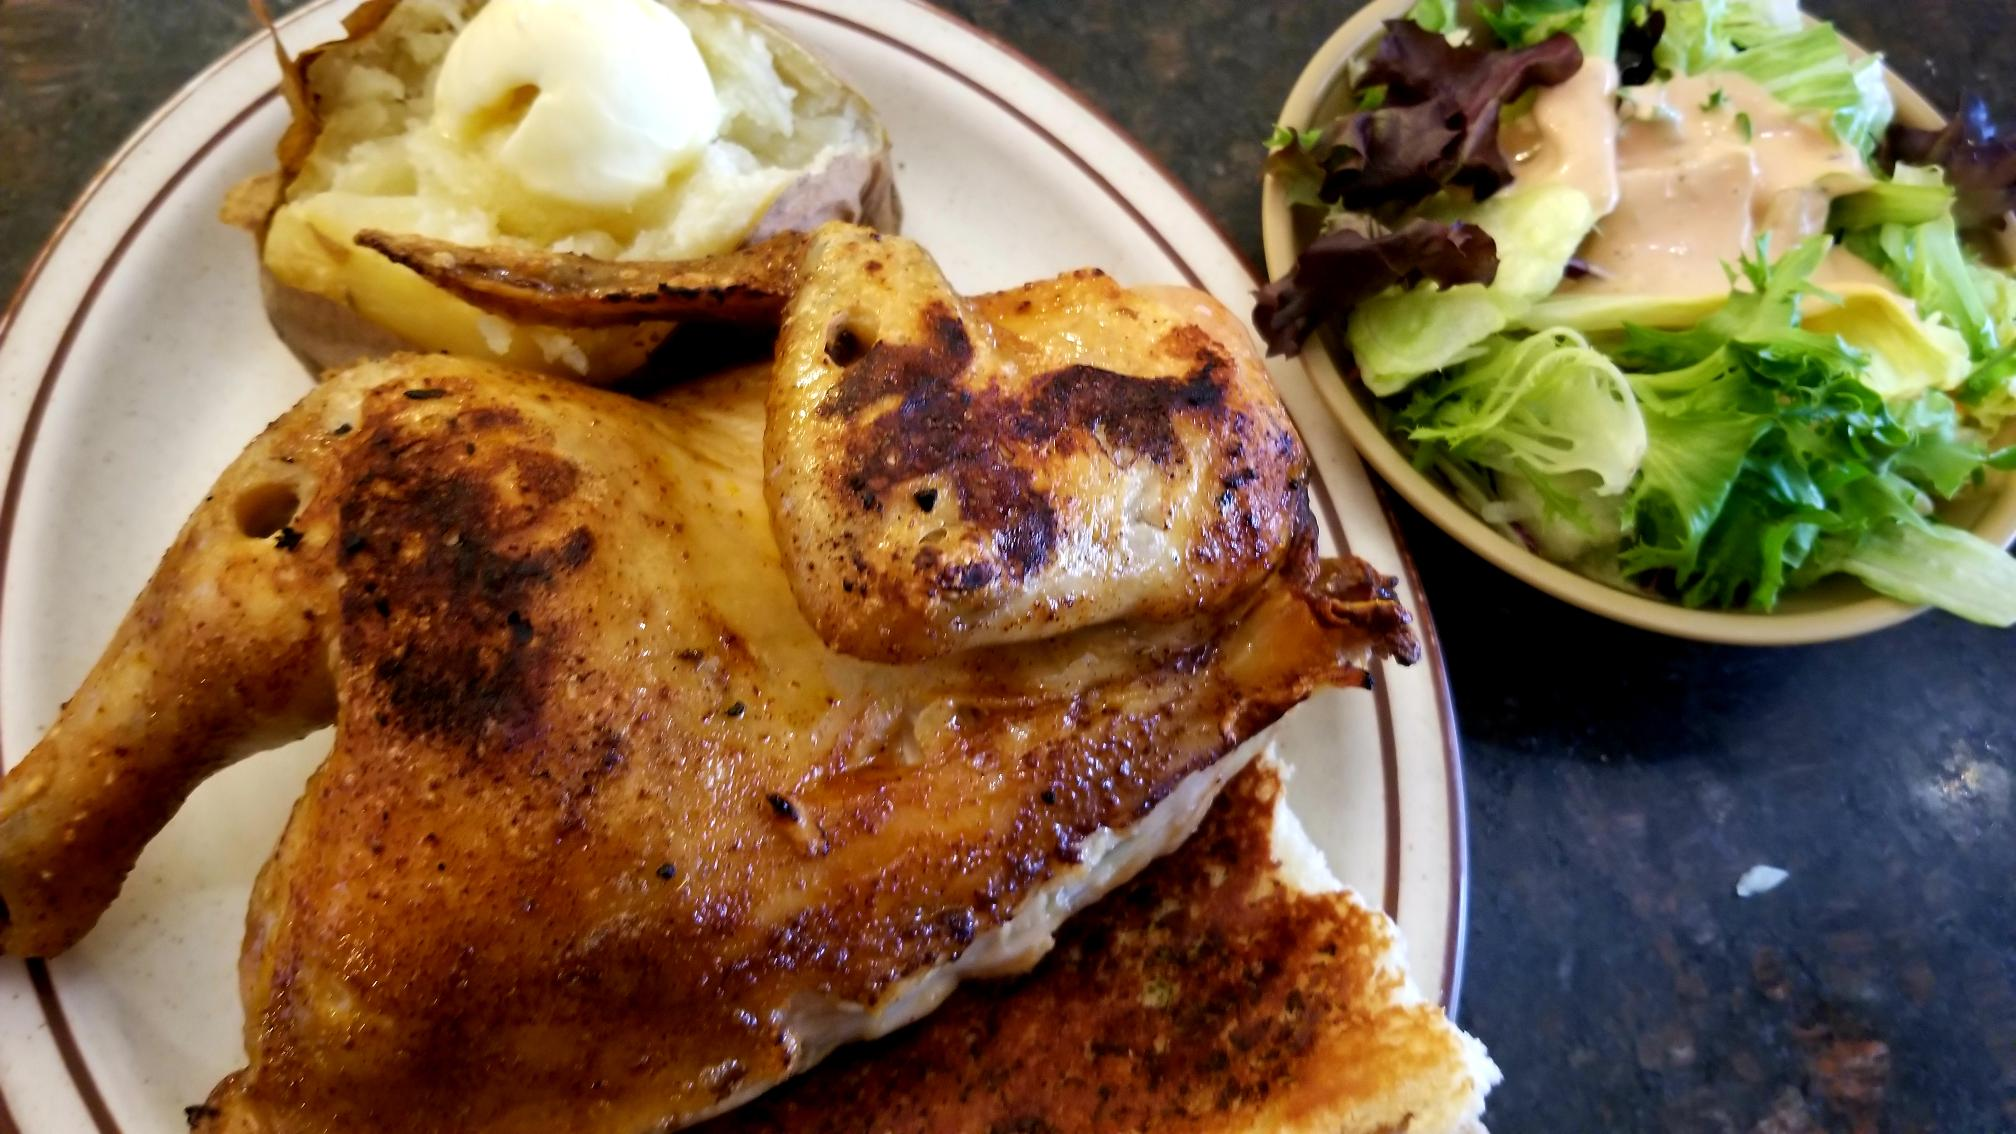 Golden browned whole chicken on white plate with baked potato and salad